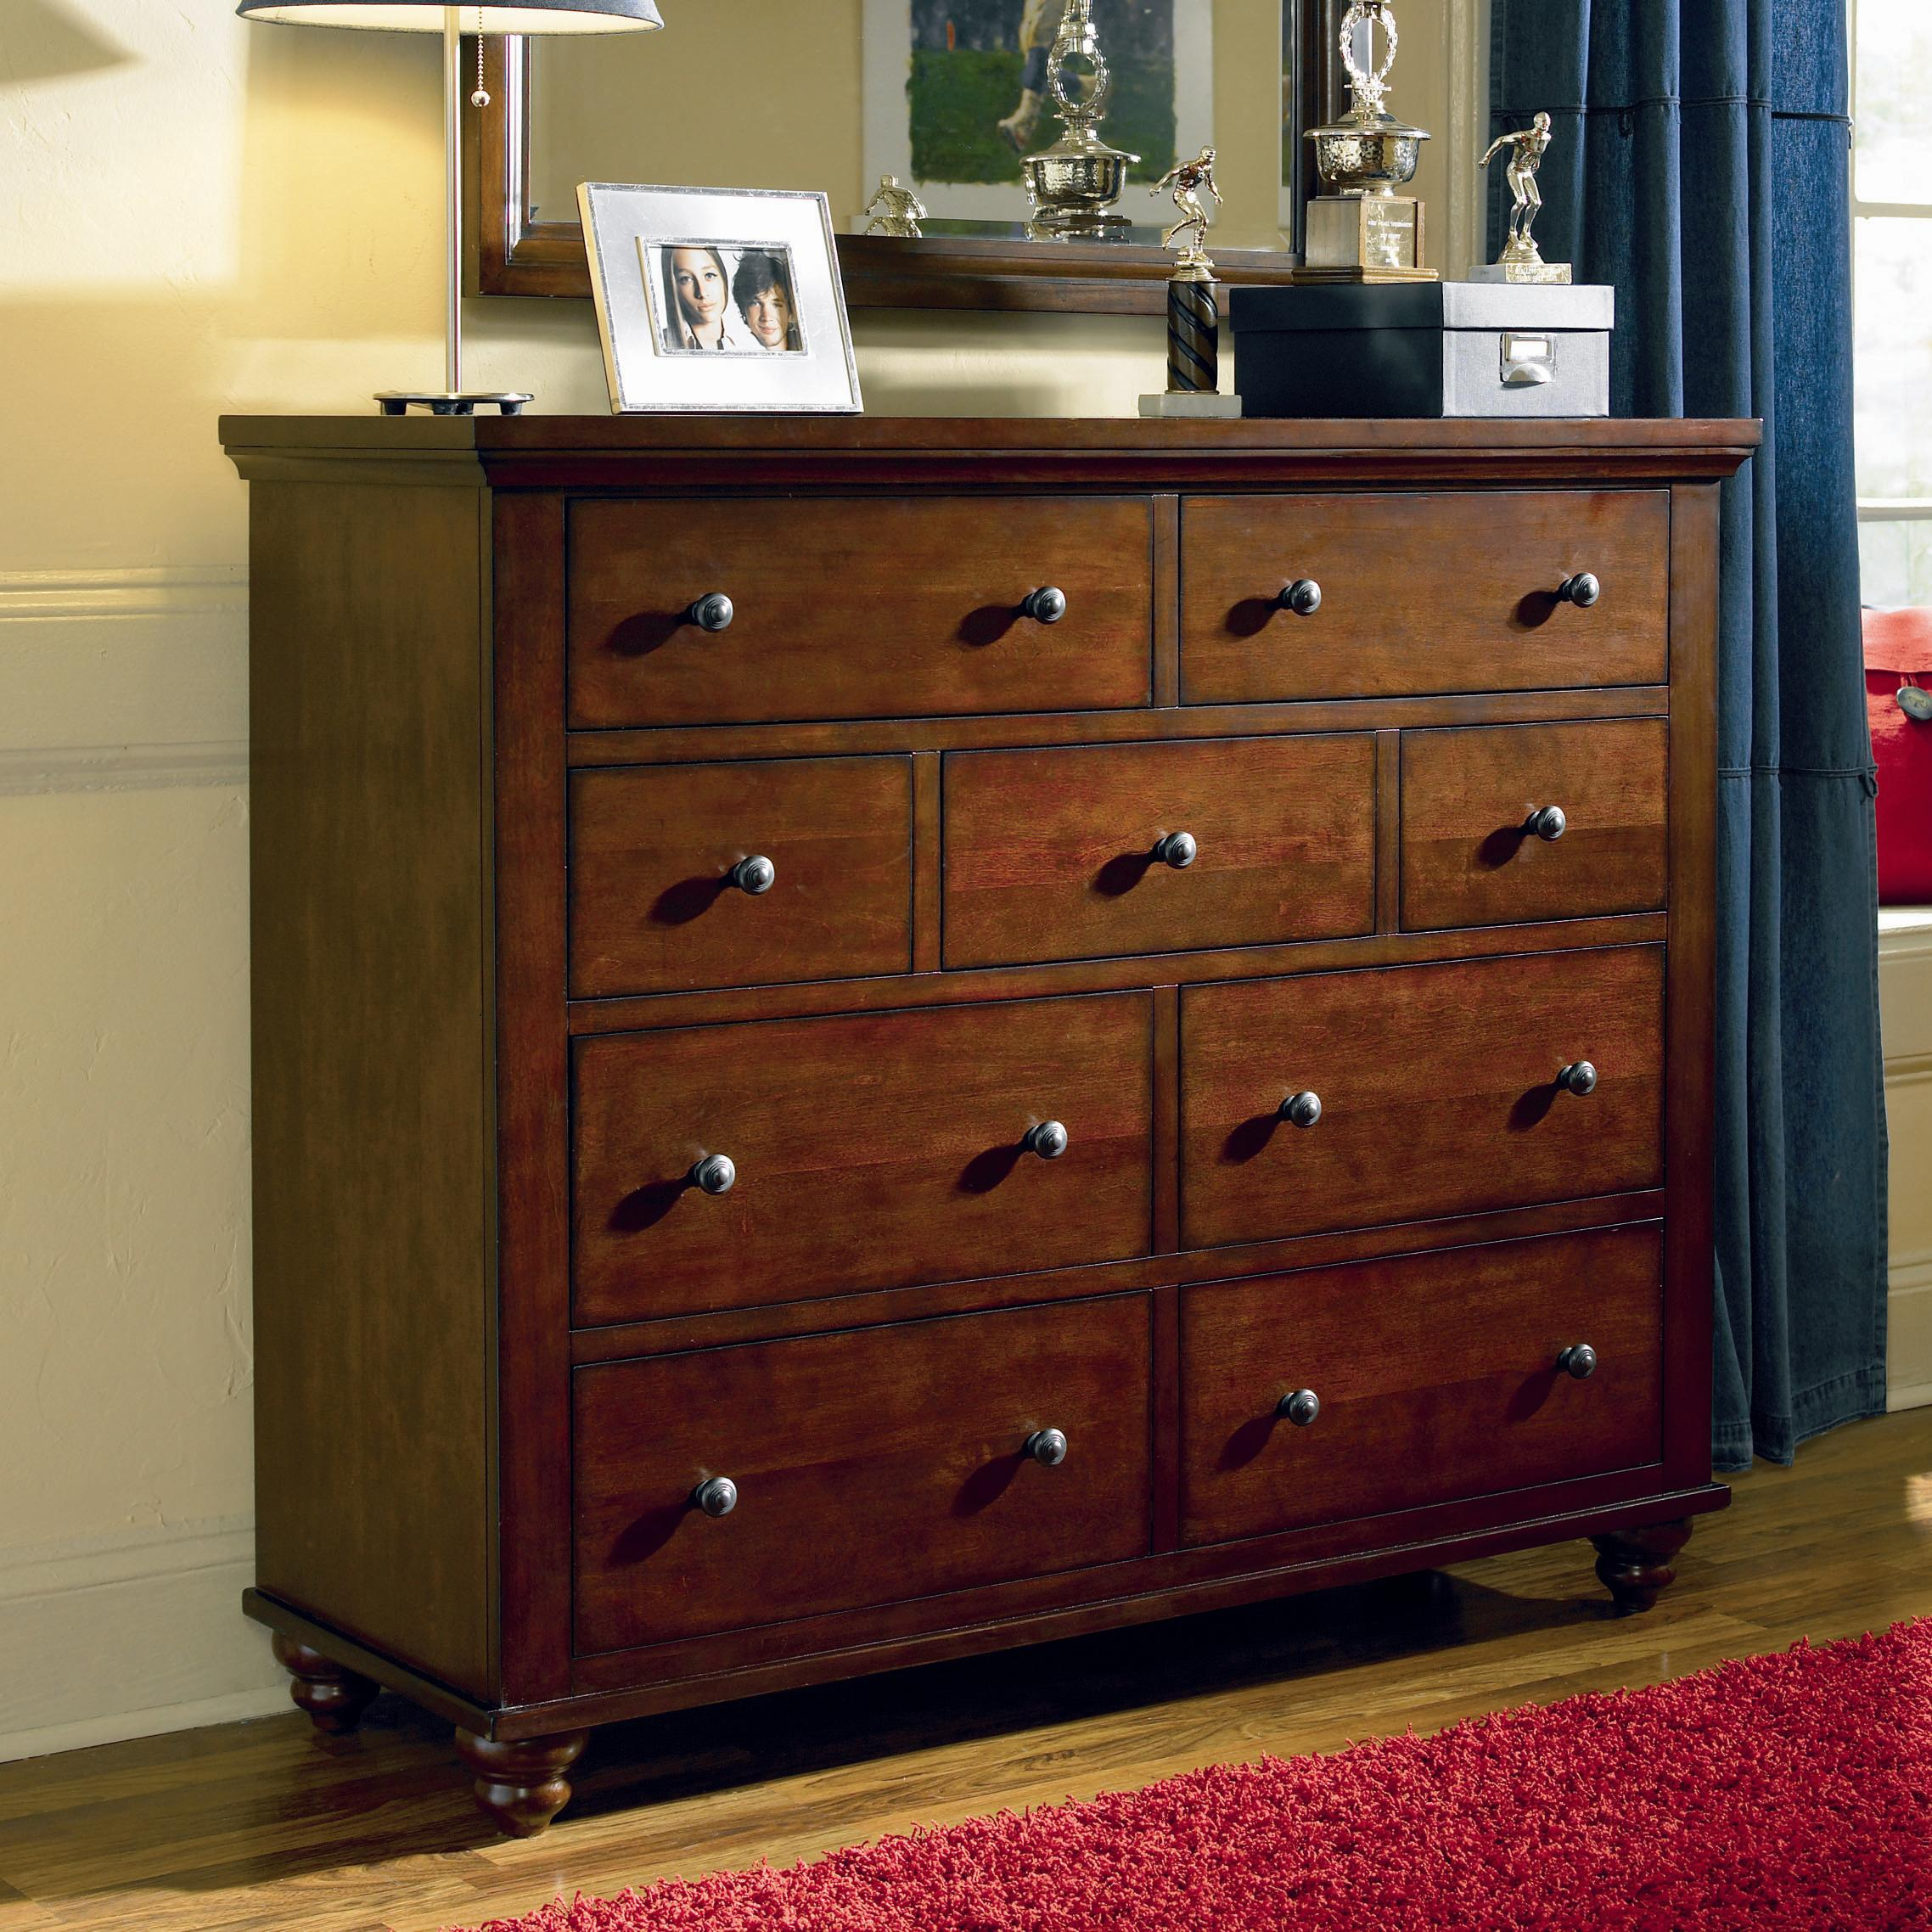 Aspenhome Cambridge Chesser with 9 Drawers - Item Number: ICB-555-BCH